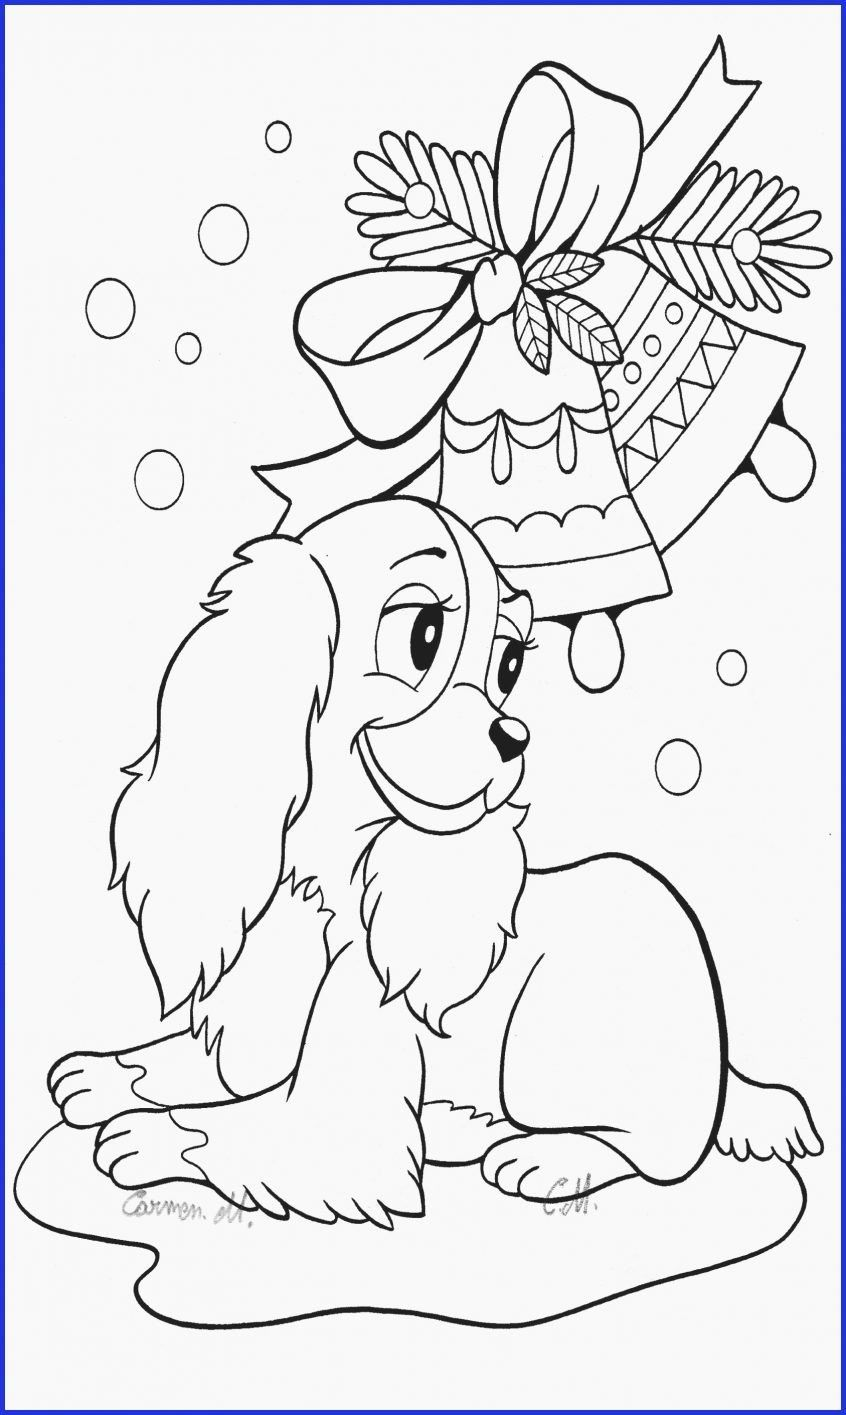 Pin By Floor De Poorter On Paint Coloring Pages Printable Christmas Coloring Pages Puppy Coloring Pages Disney Coloring Pages